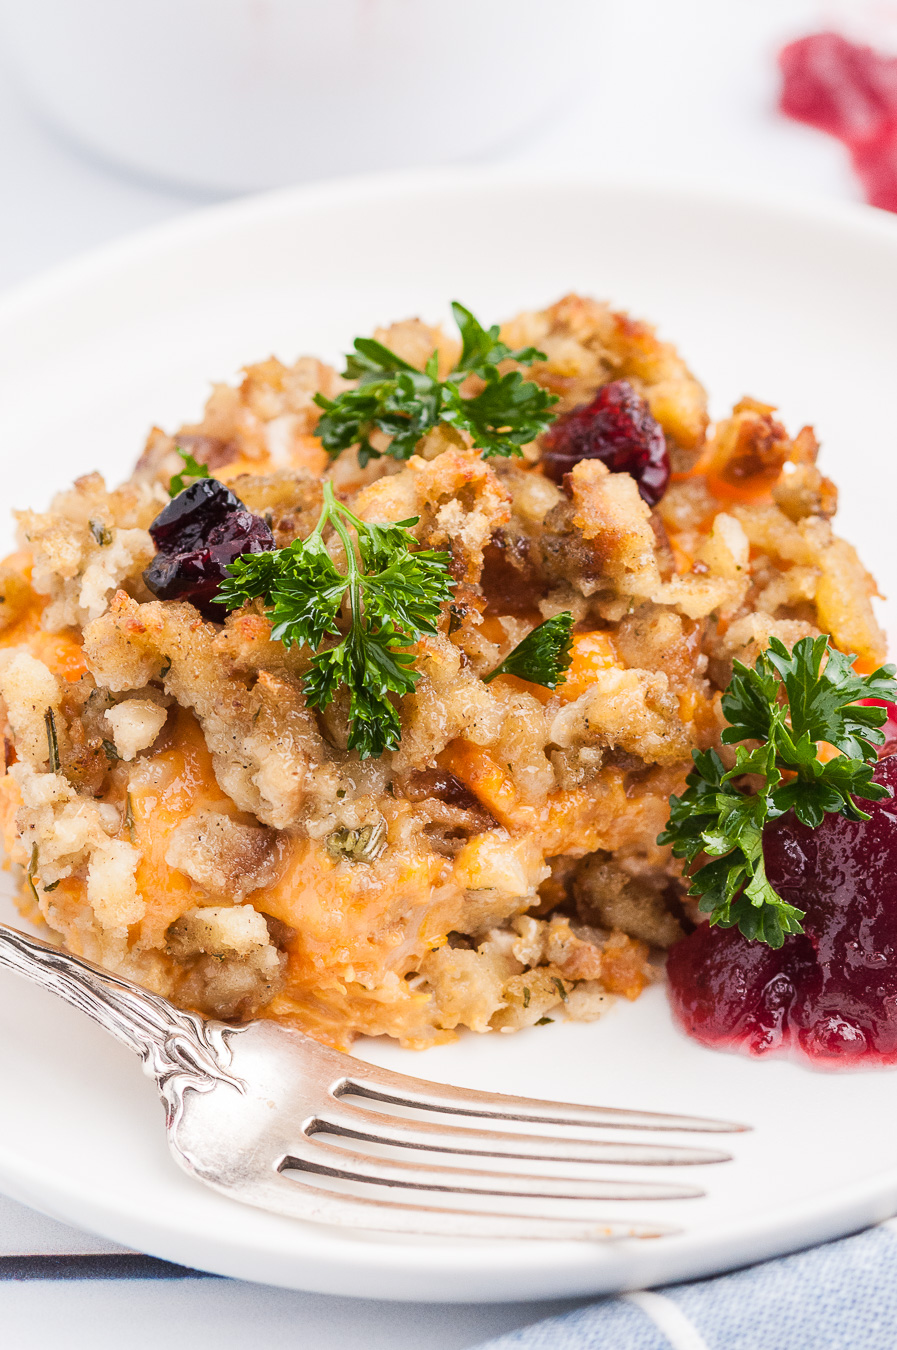 serving of leftovers on plate with garnish and cranberry sauce.